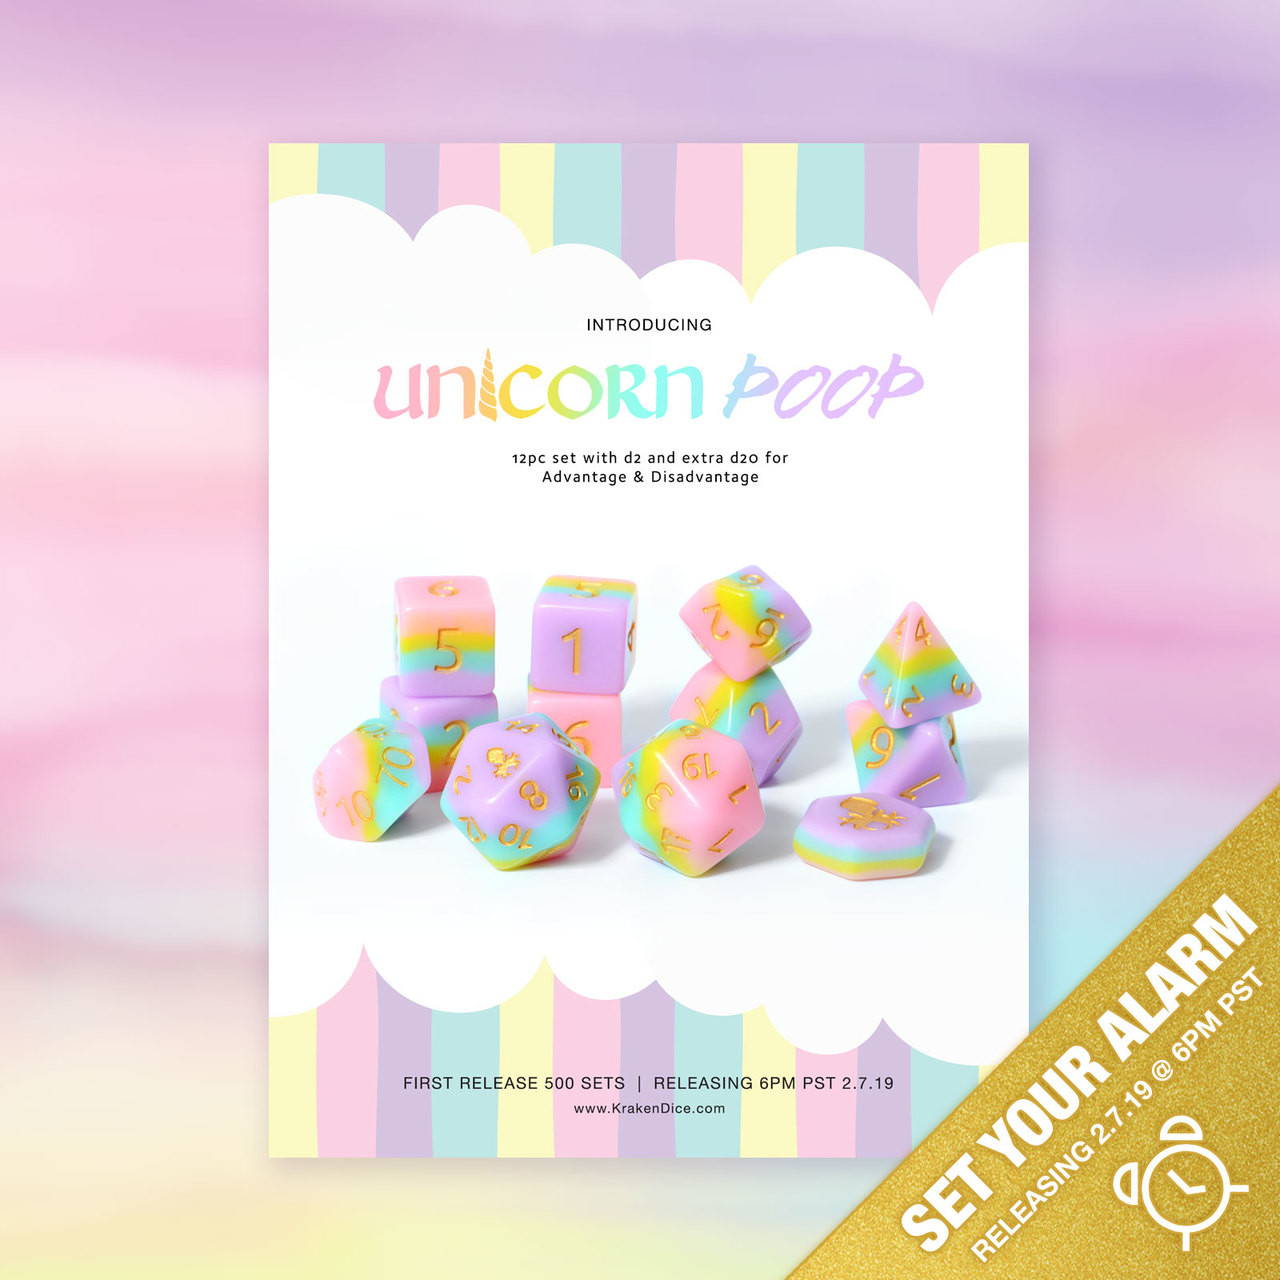 Unicorn Poop 12pc Matte DnD Dice Set With Kraken Logo